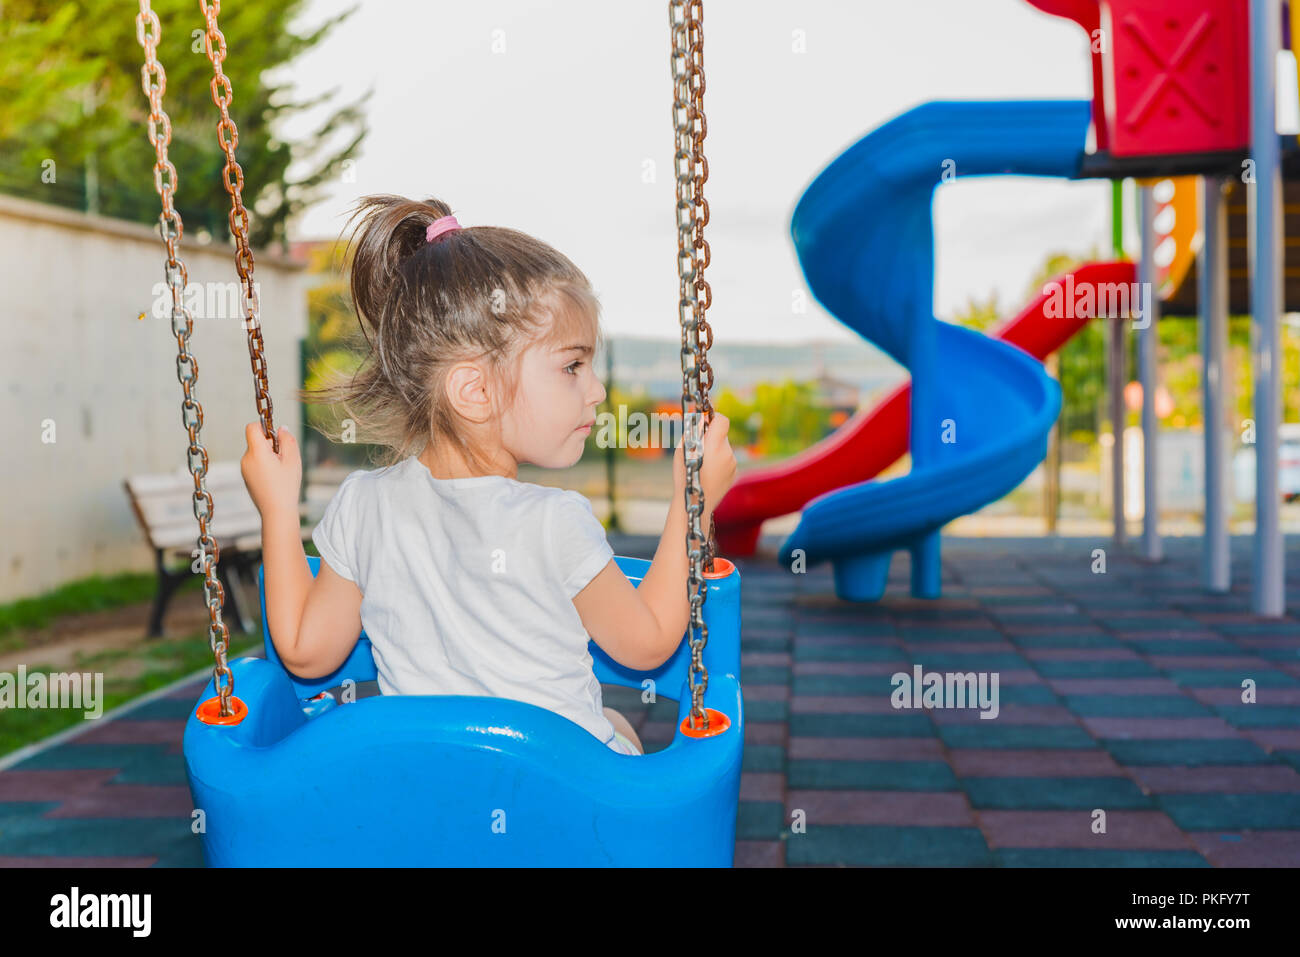 Back view of a cute little girl holding chairs and swinging on playground - Stock Image